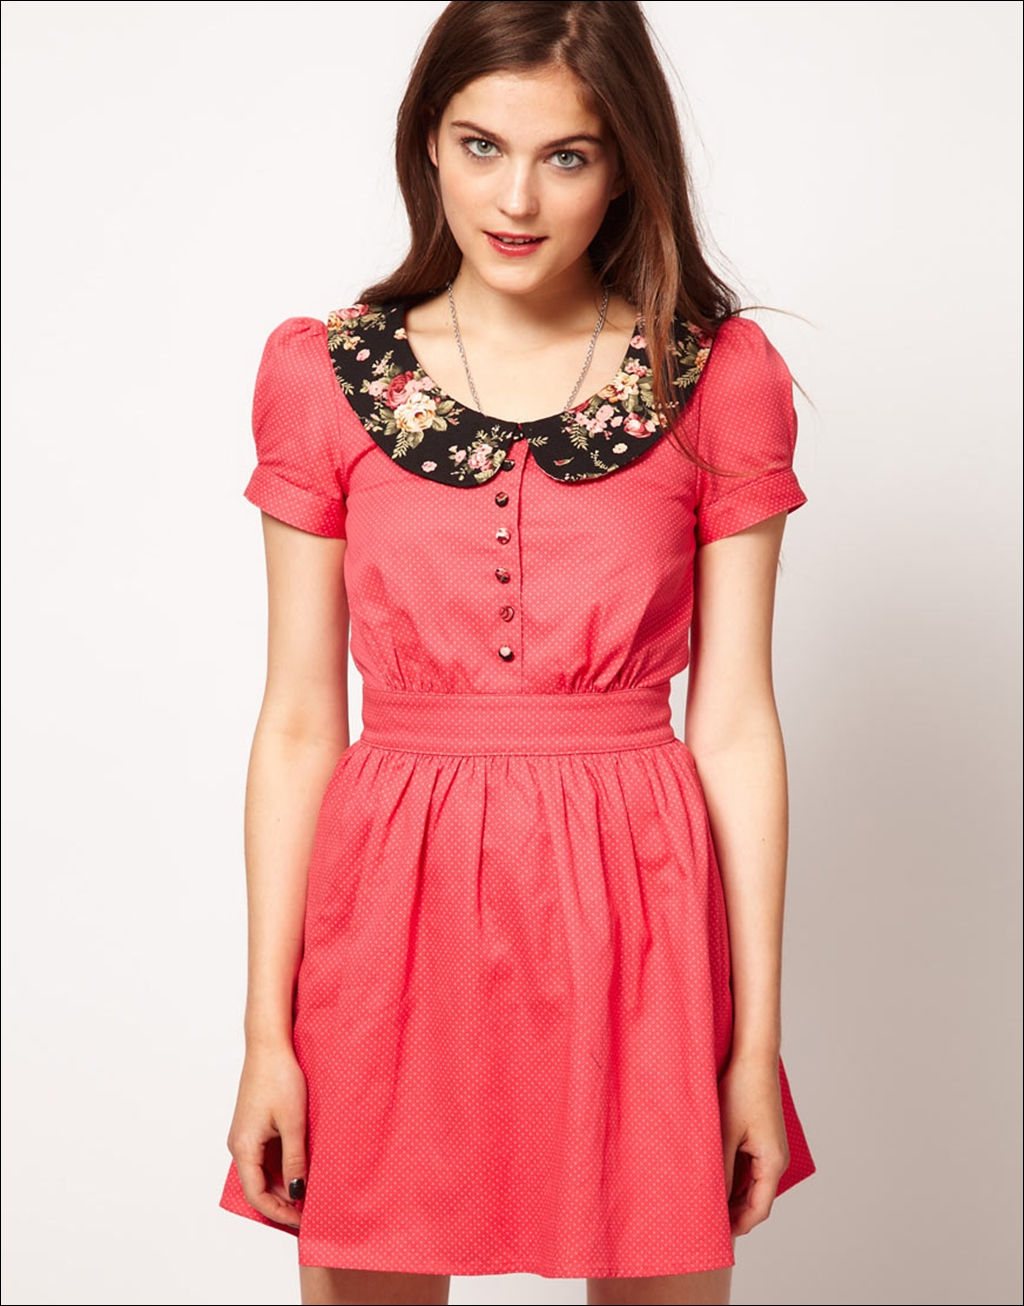 beauty-skater-dresses-girls-colors-03